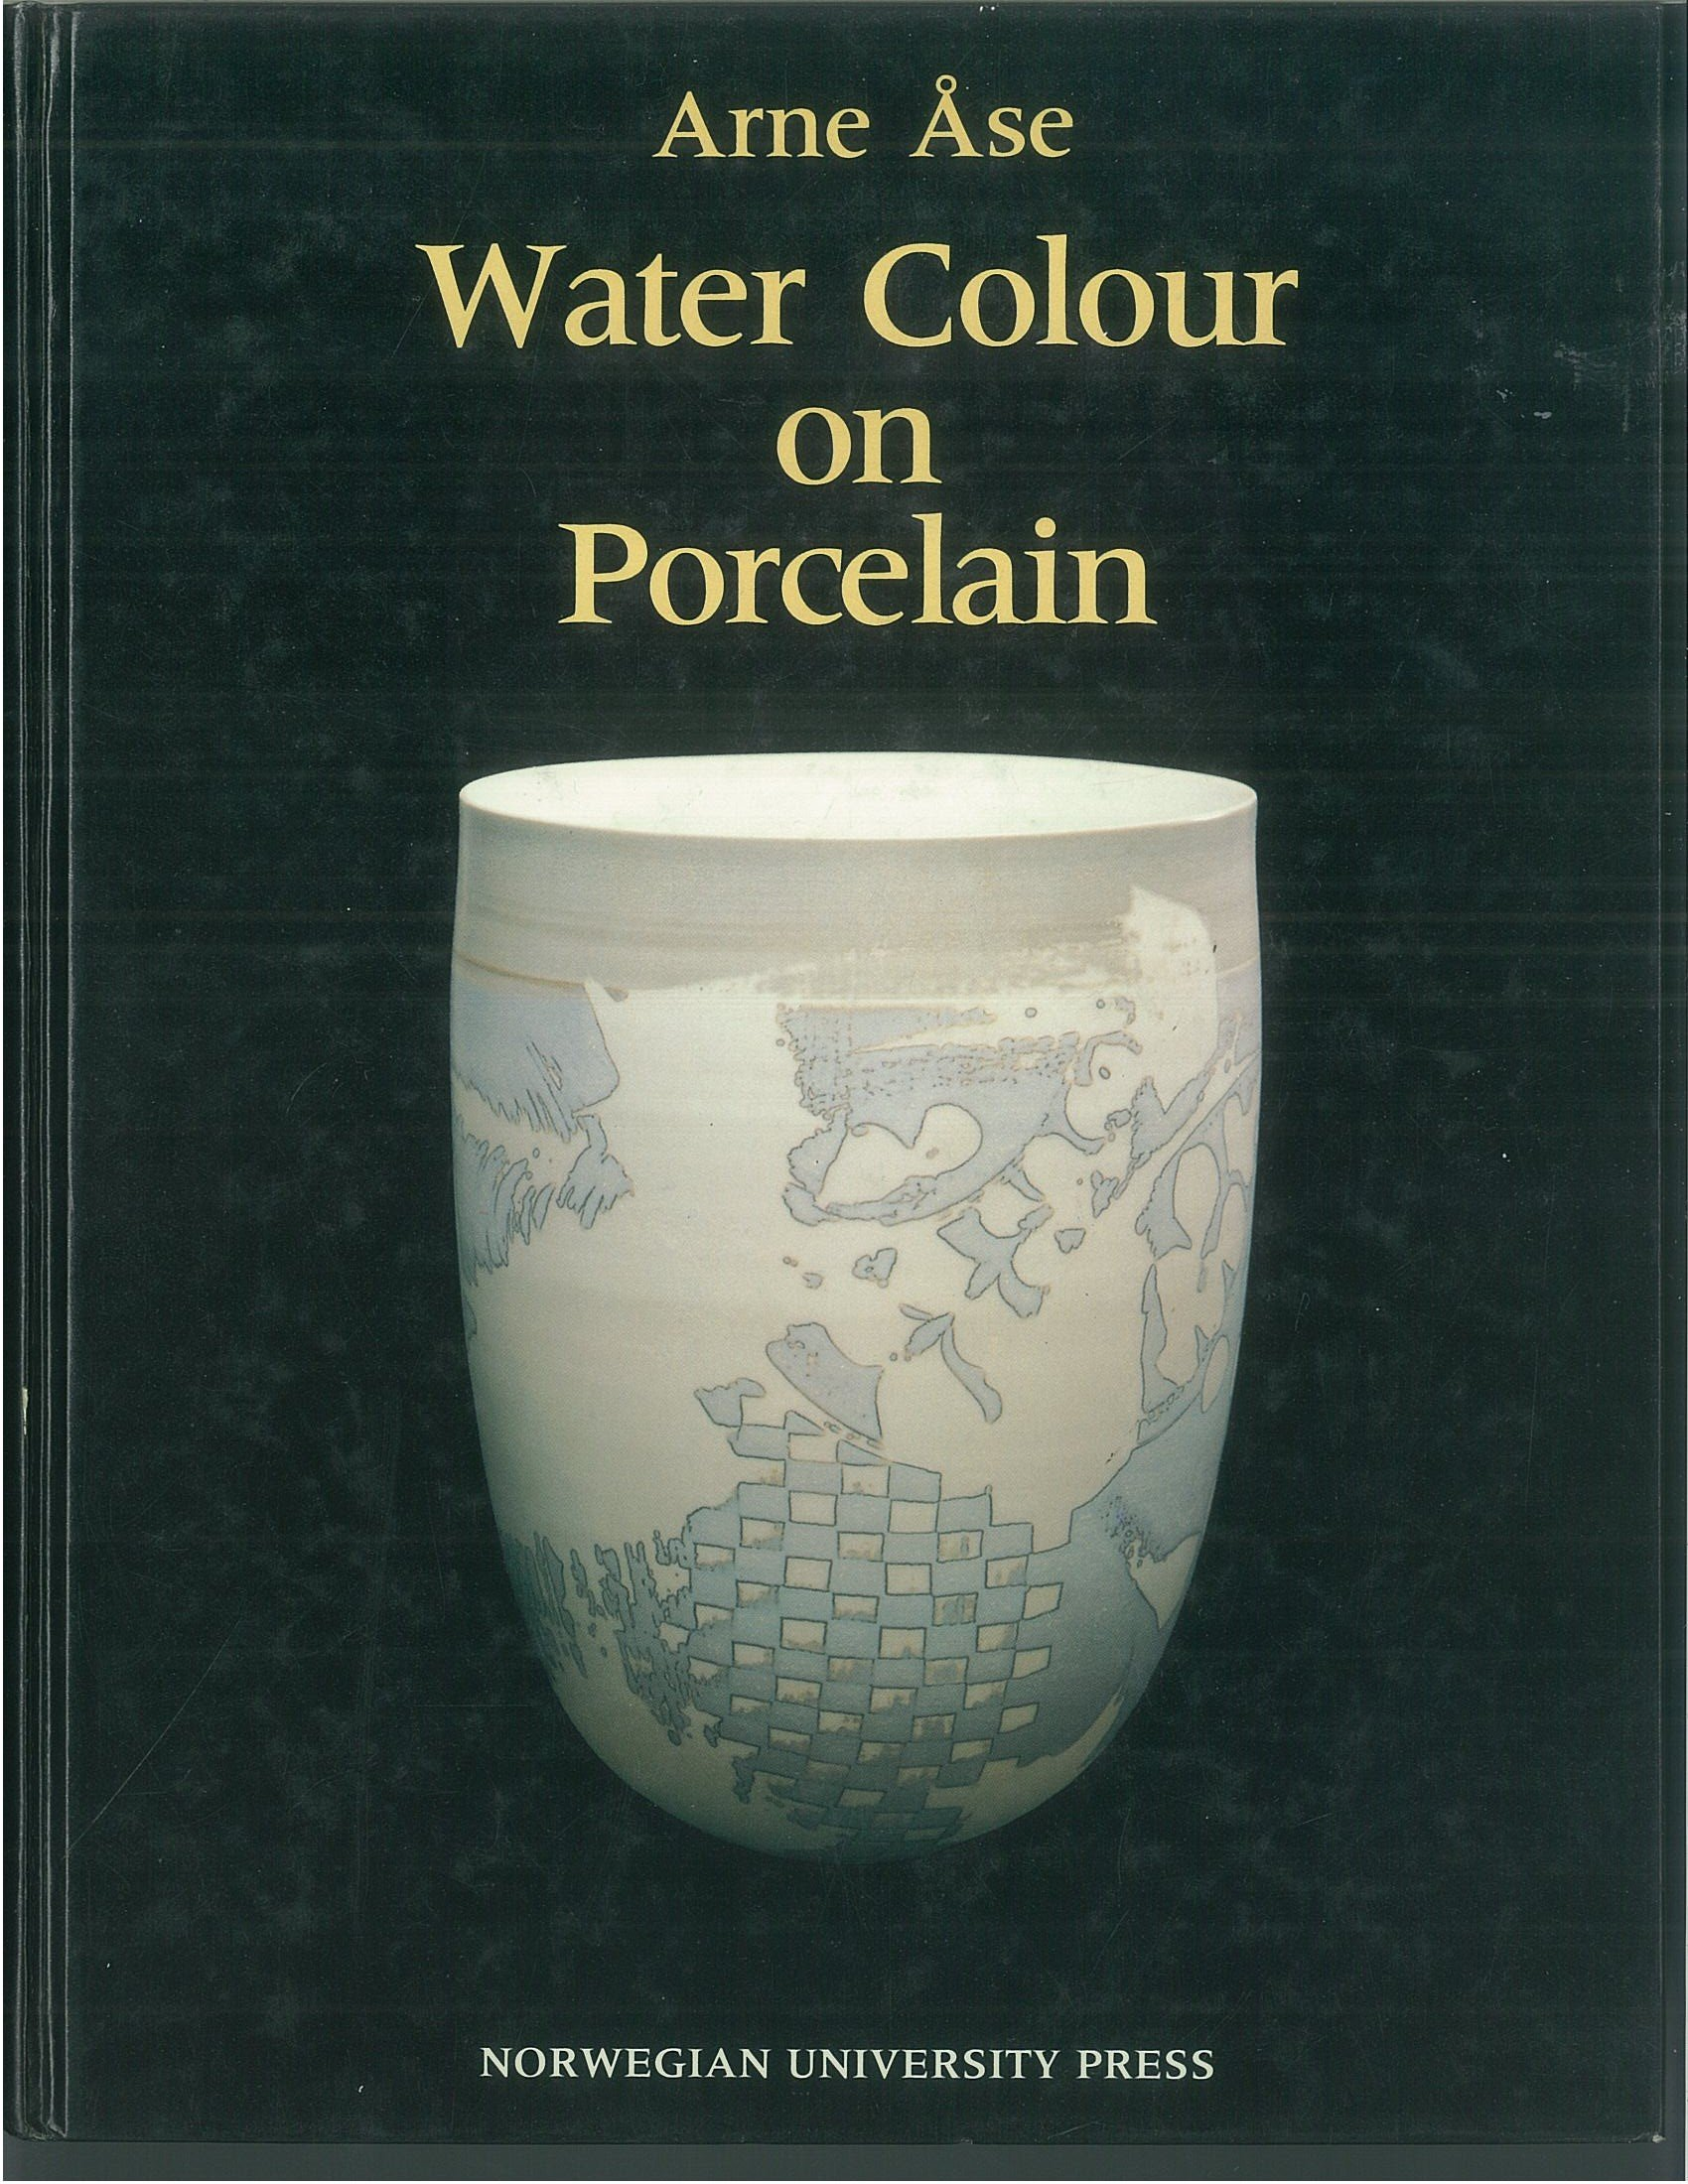 Water Colour on Porcelain: A Guide to the Use of Water Soluble